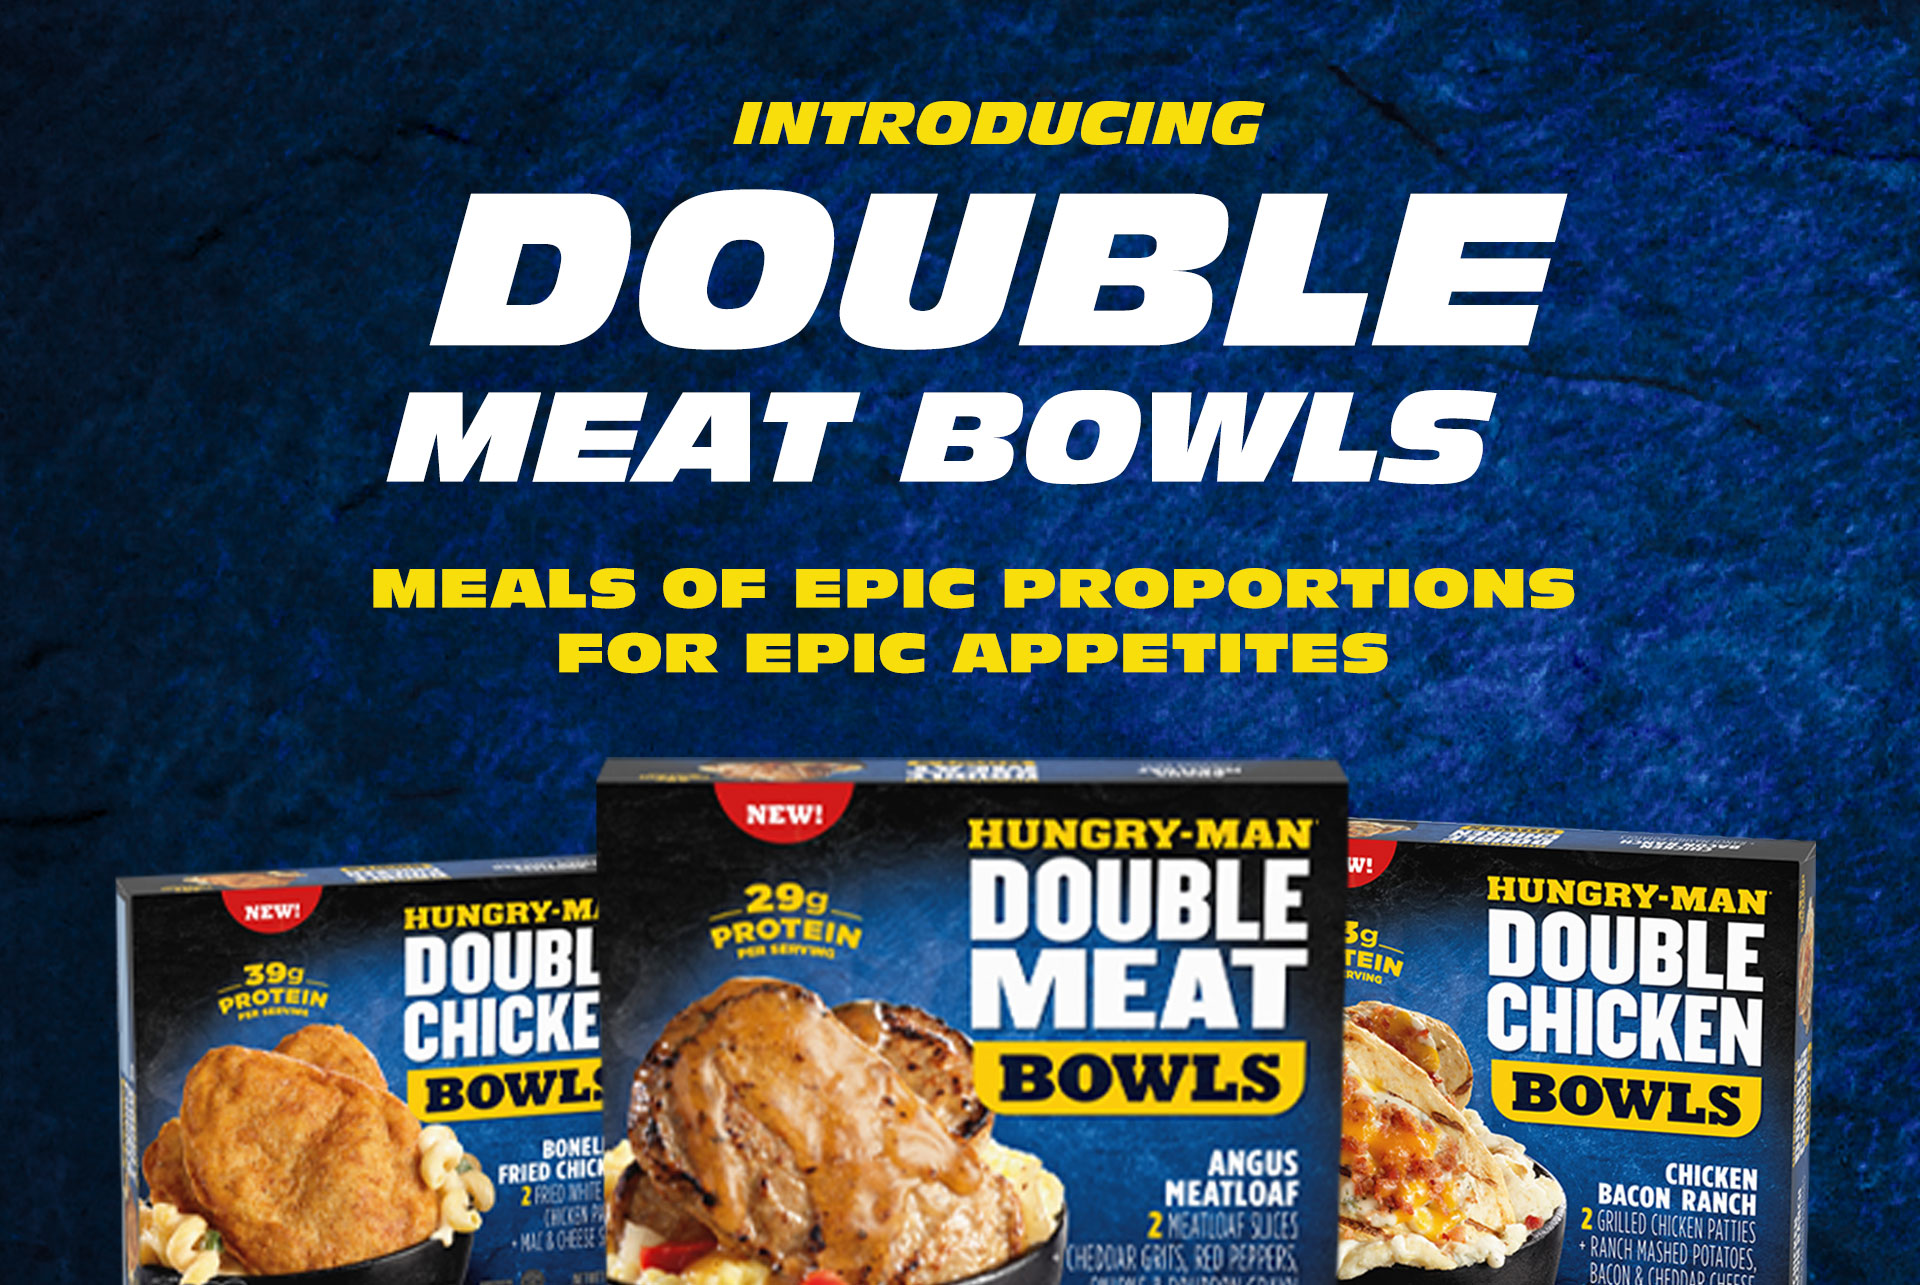 Introducing New Double Meat Bowls